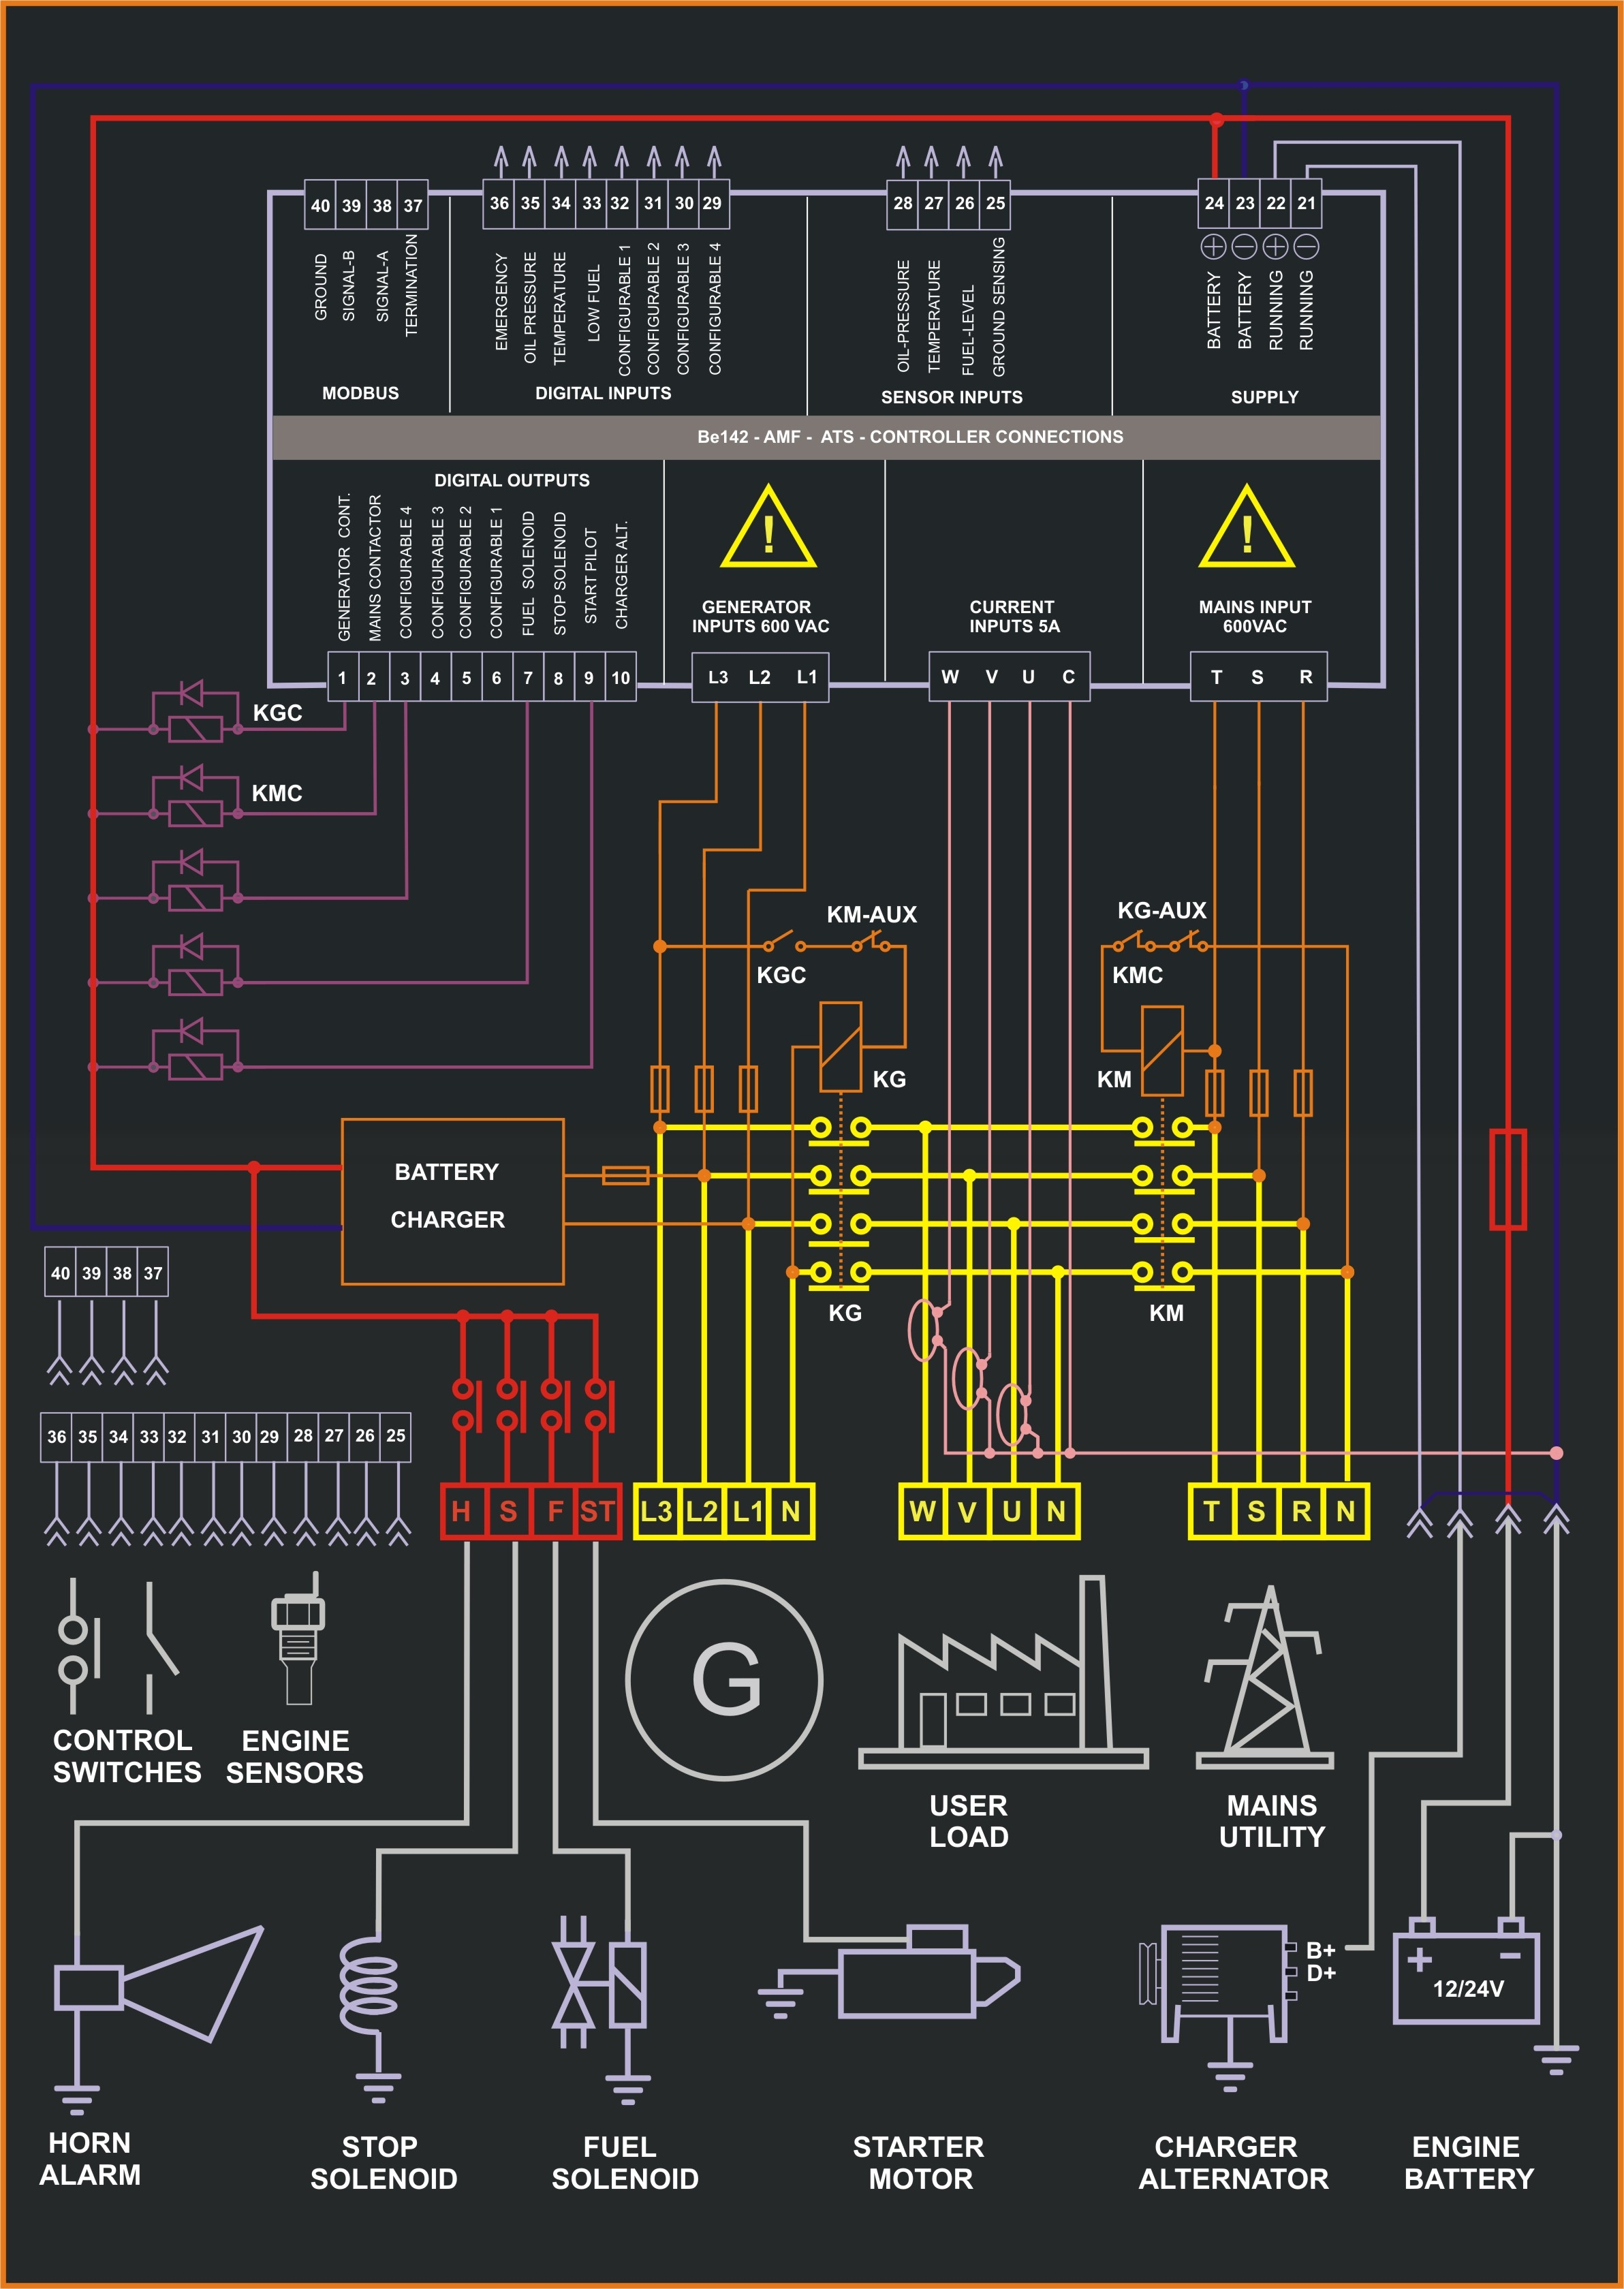 Control panel circuit diagram pdf control panel circuit diagram genset controller plc control panel wiring diagram pdf at reclaimingppi.co